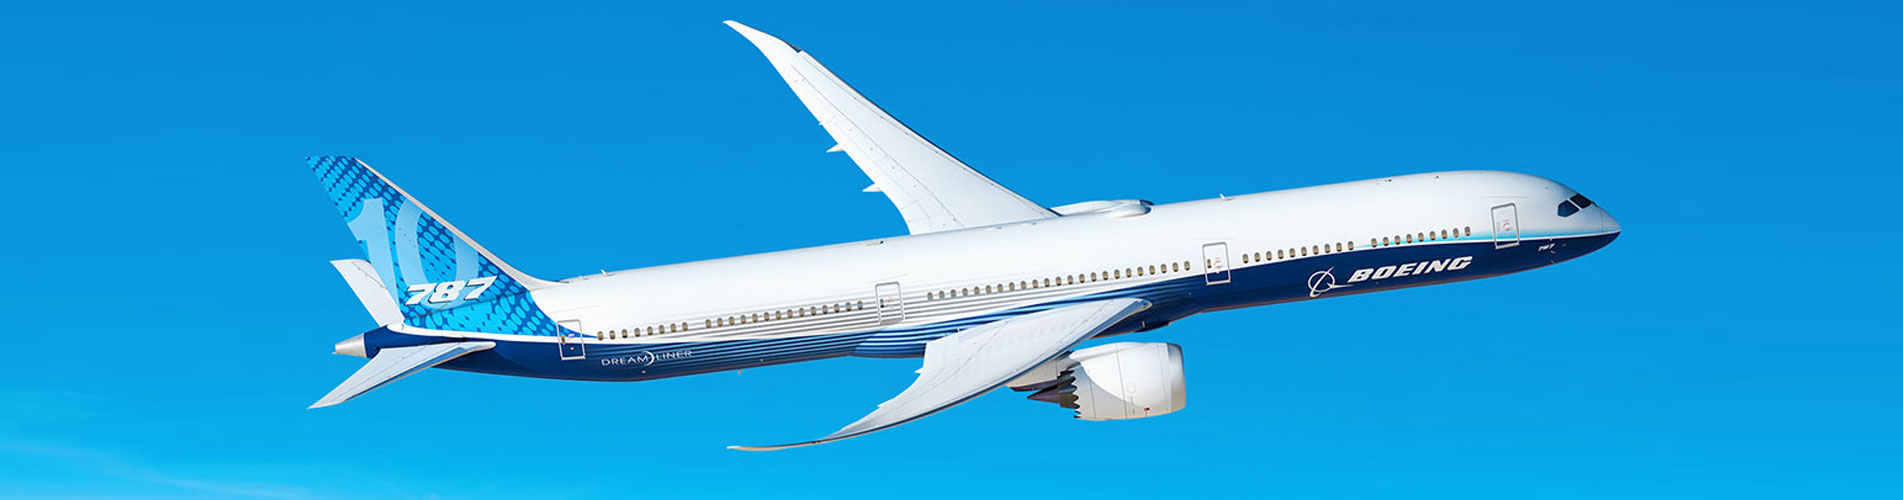 Boeing Reduces 787 Dreamliner Output